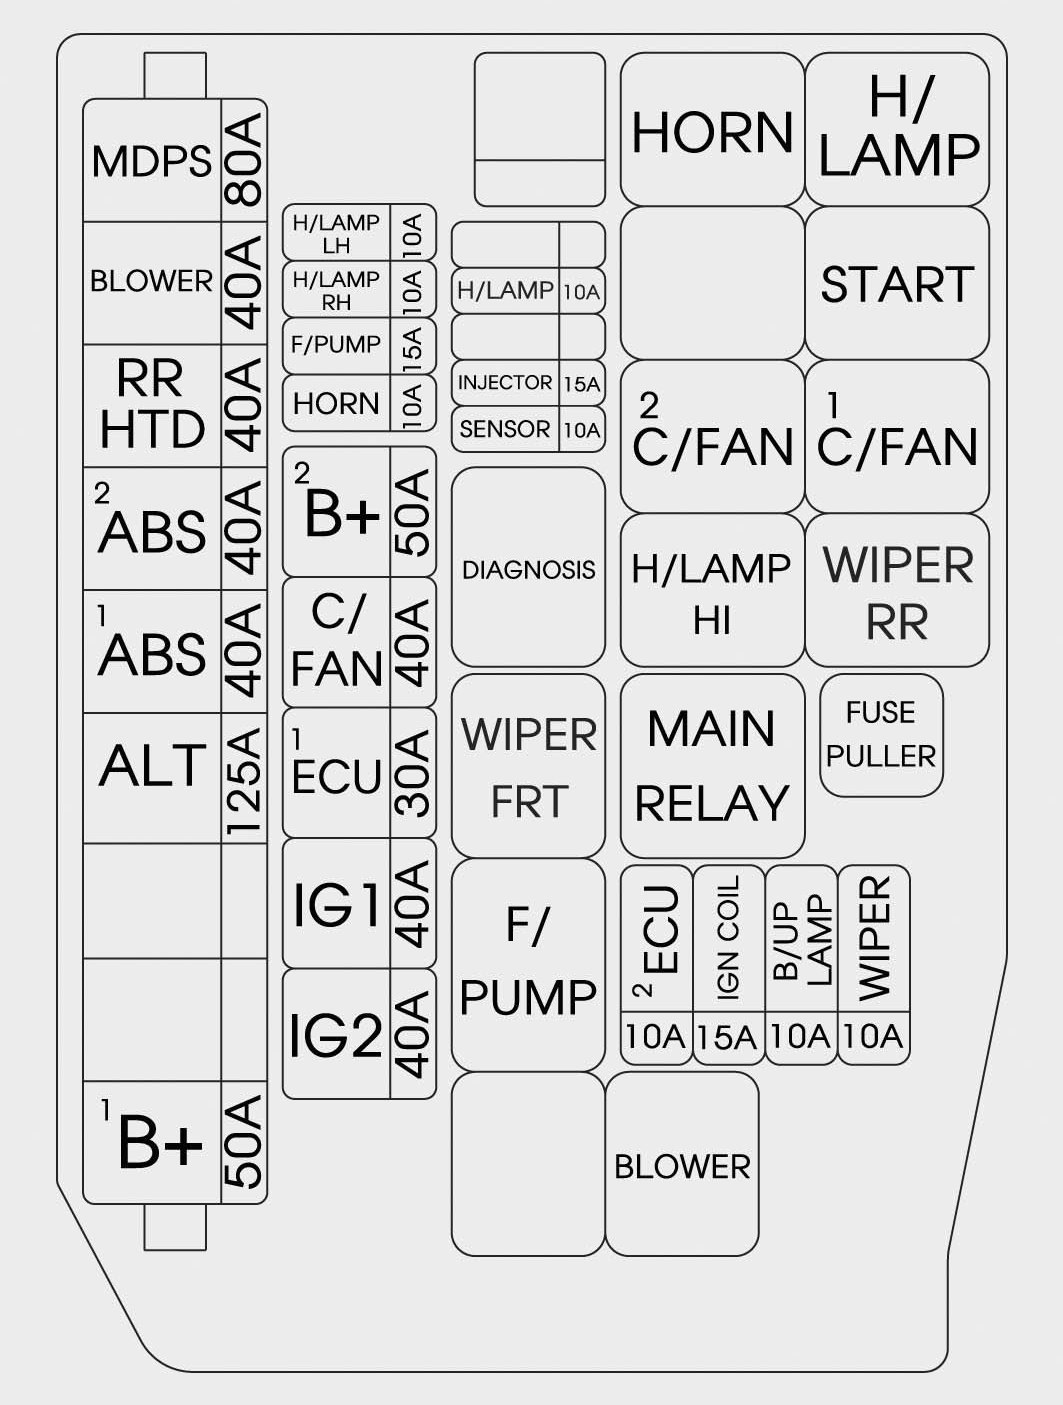 DIAGRAM] 2012 Sonata Fuse Box Diagram FULL Version HD Quality Box Diagram -  CM631UDWIRING.CONCESSIONARIABELOGISENIGALLIA.ITconcessionariabelogisenigallia.it